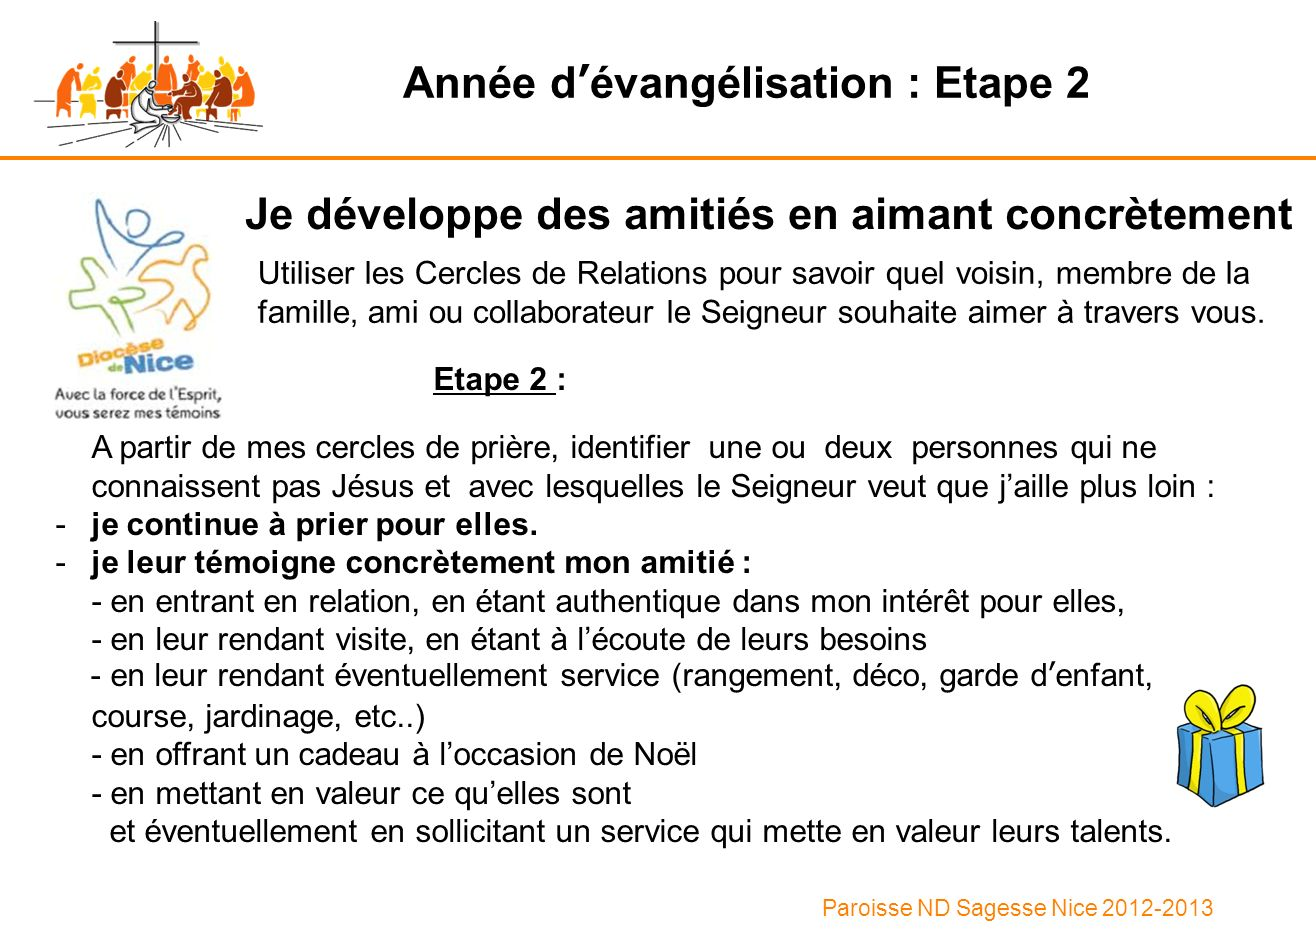 Paroisse ND Sagesse Nice 2012-2013 Year of evangelisation : Stage 2 I develop friendships by expressing love in practice Identify one or two people who do not know Jesus and whom the Lord wants you to take a step further : -I keep praying for them.